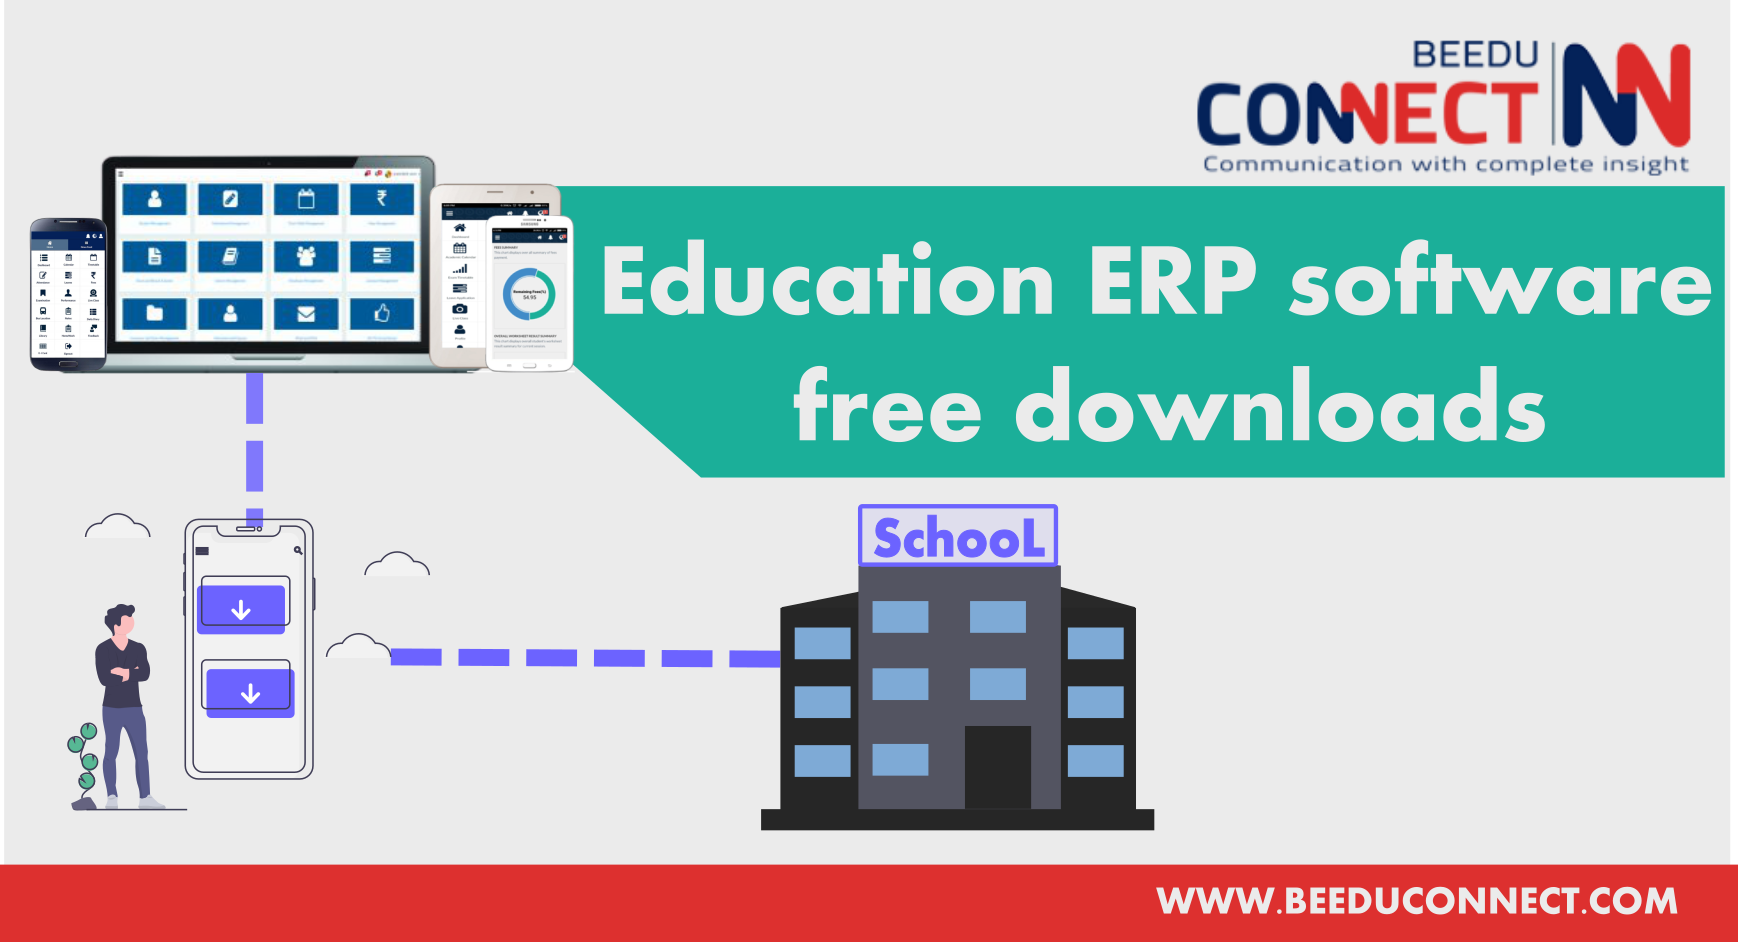 Education ERP software free downloads